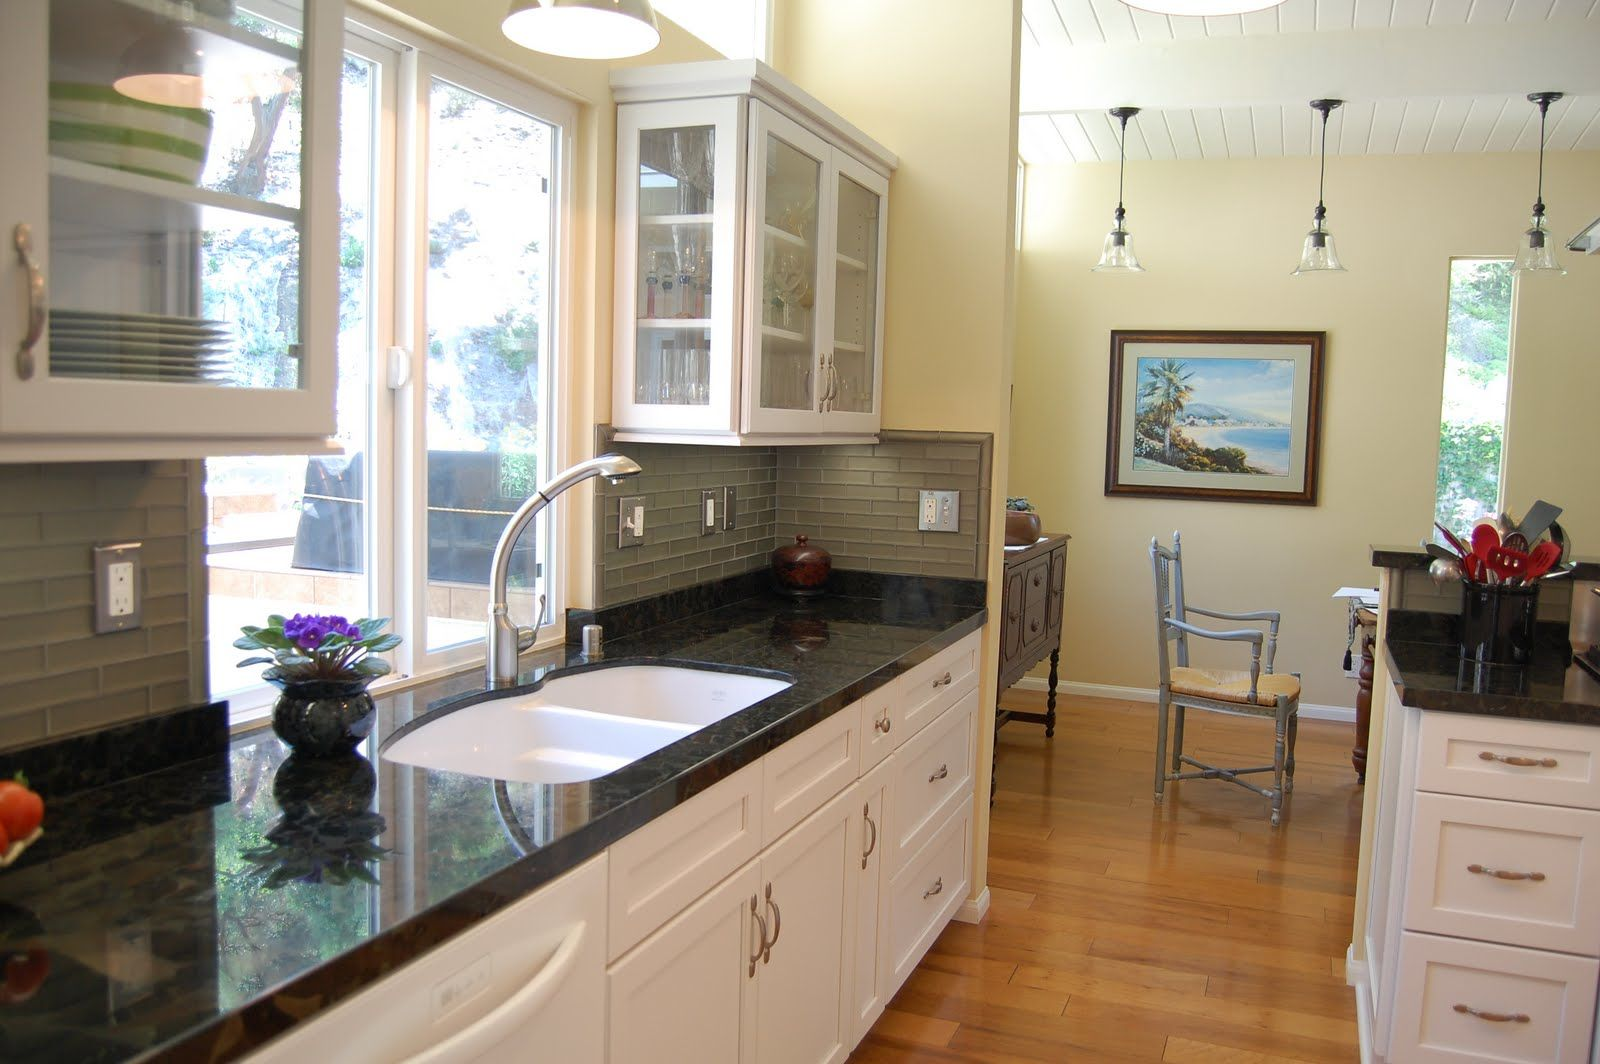 Galley Style Kitchen Layout Remodeling The Ranch Style Home Raised Ranch Remodel Style And